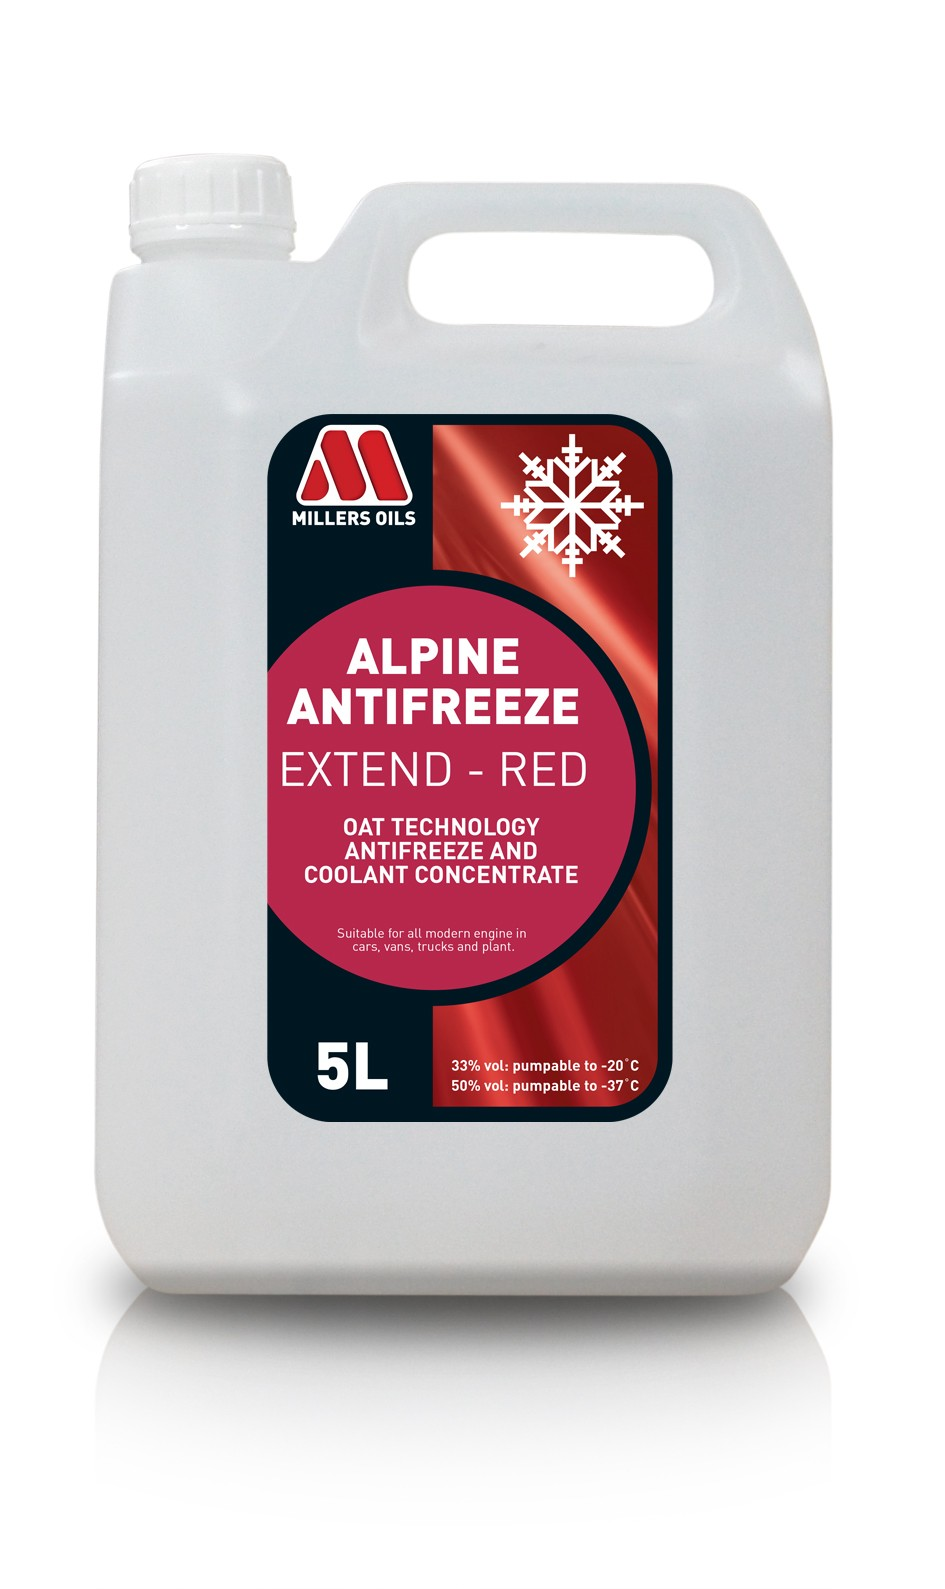 ALPINE ANTIFREEZE EXTEND RED